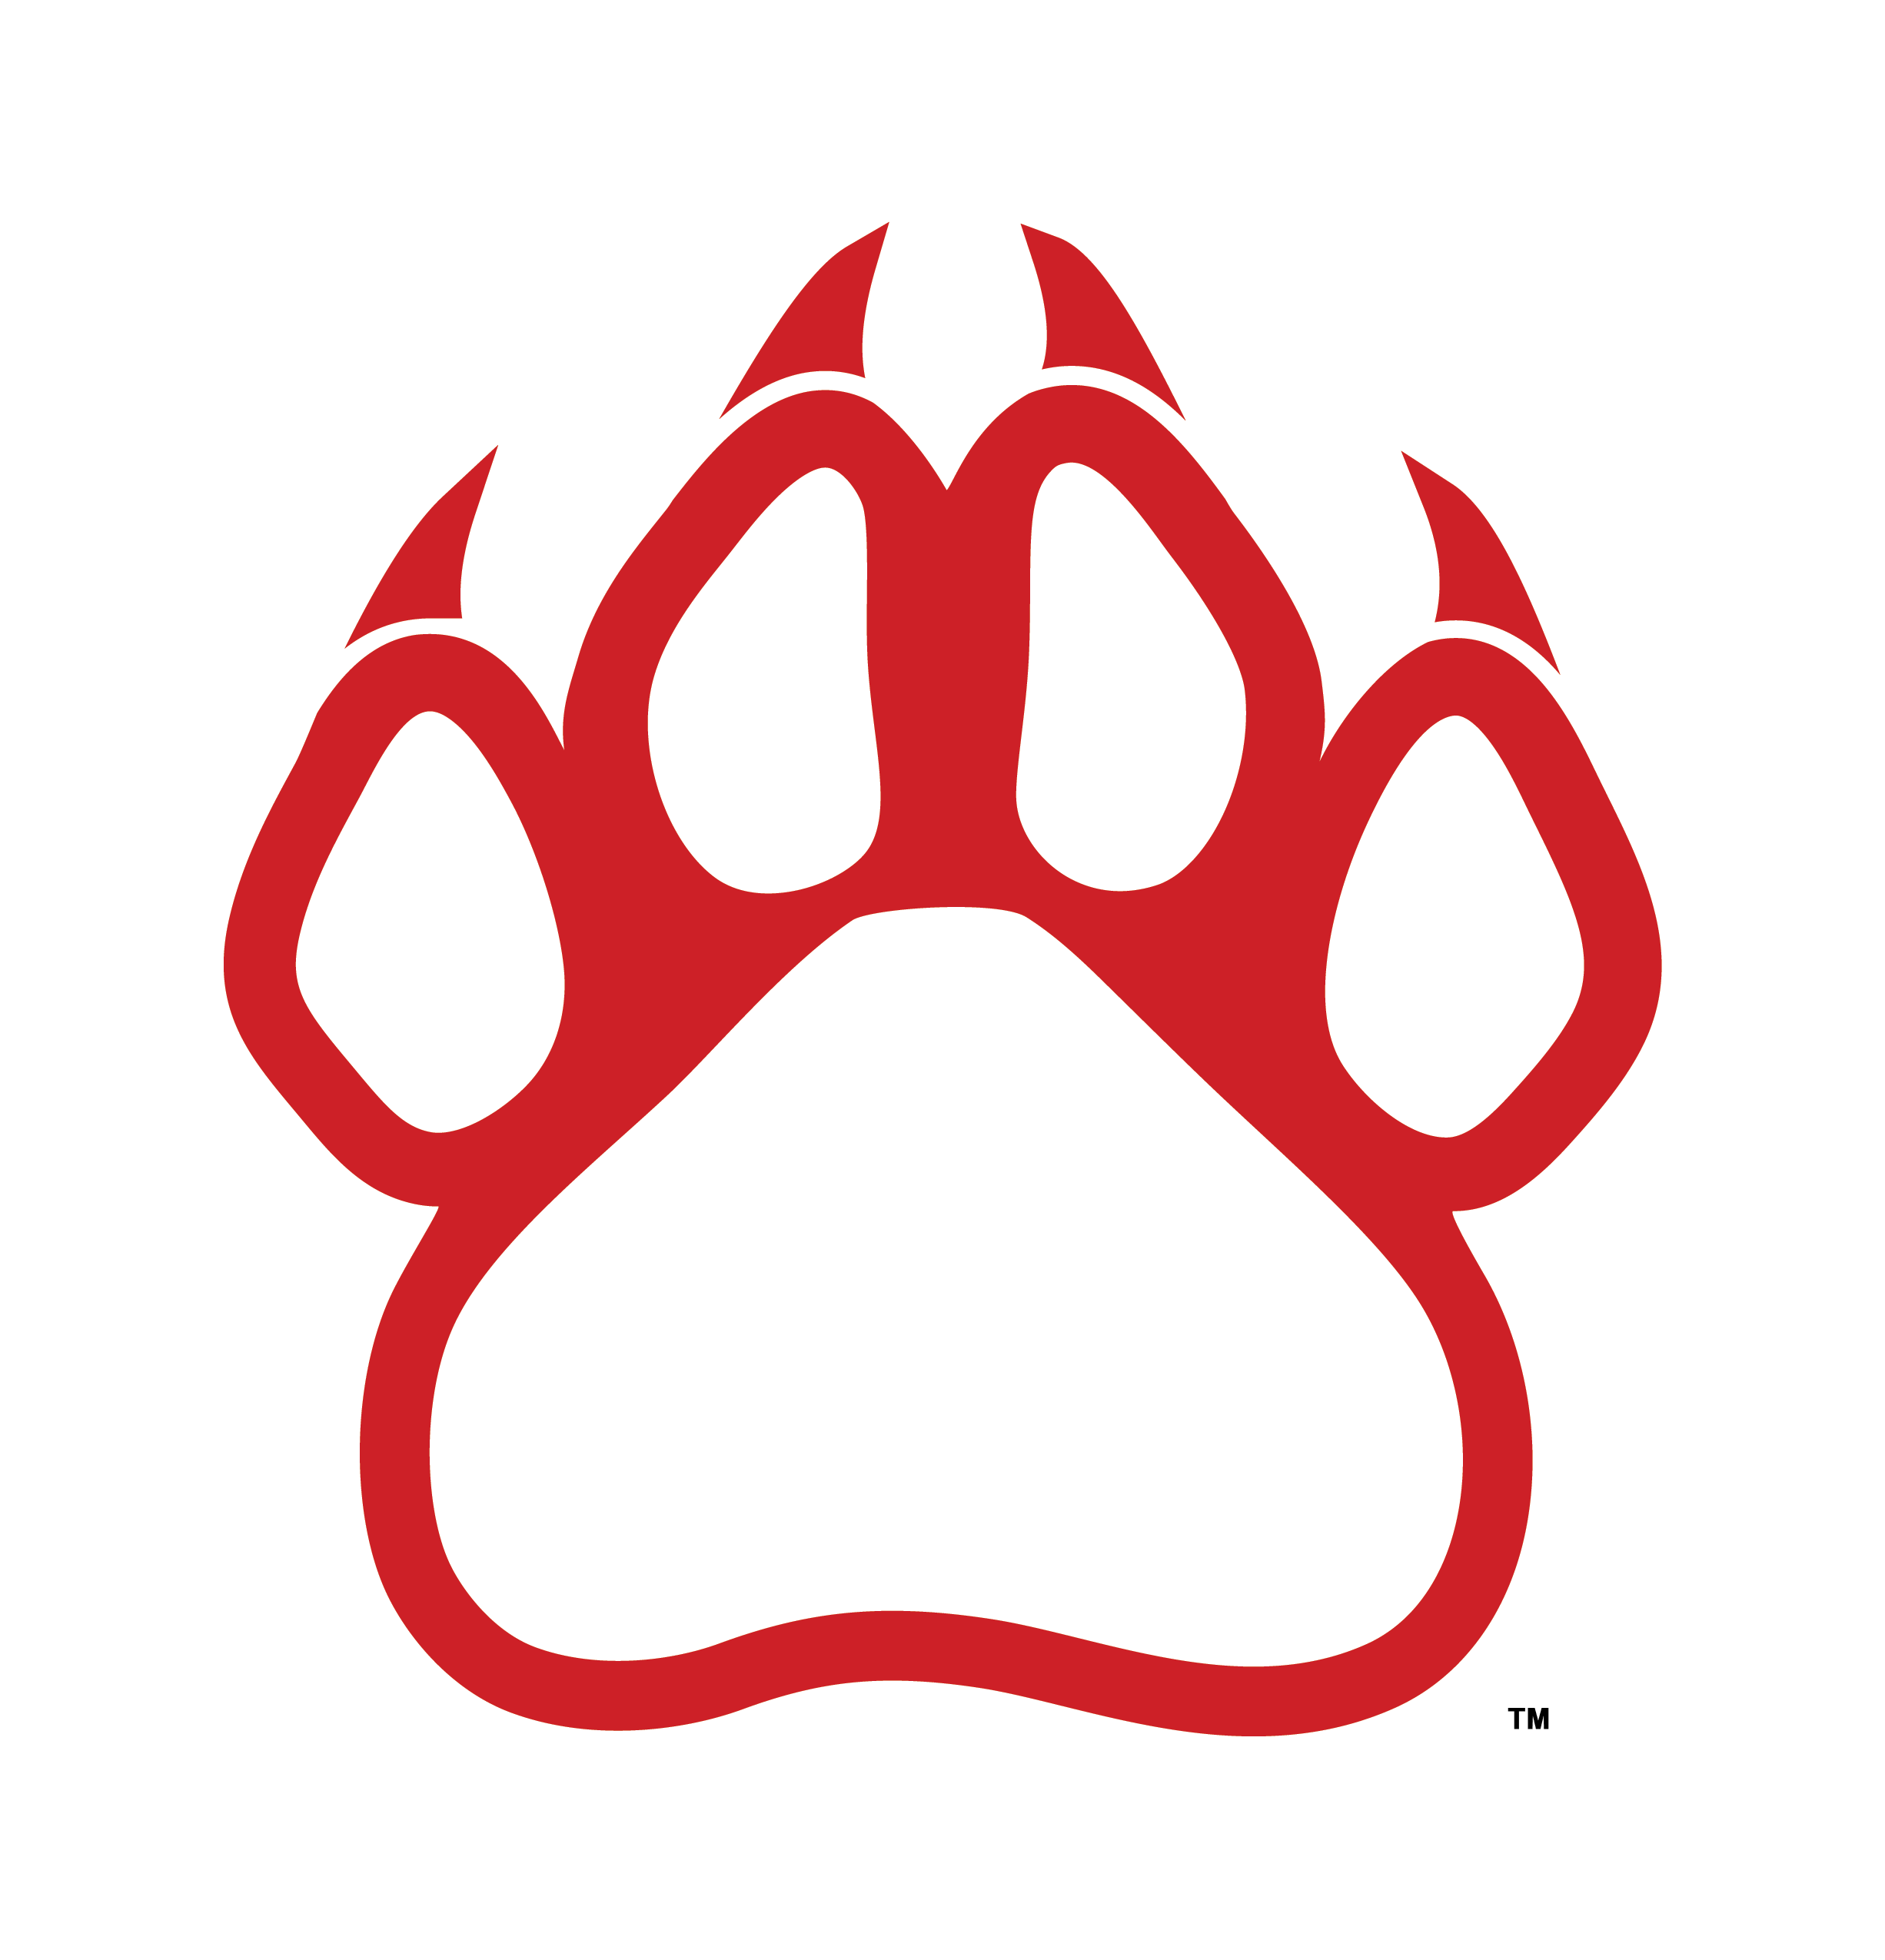 Panther paw print png. Clipart at getdrawings com